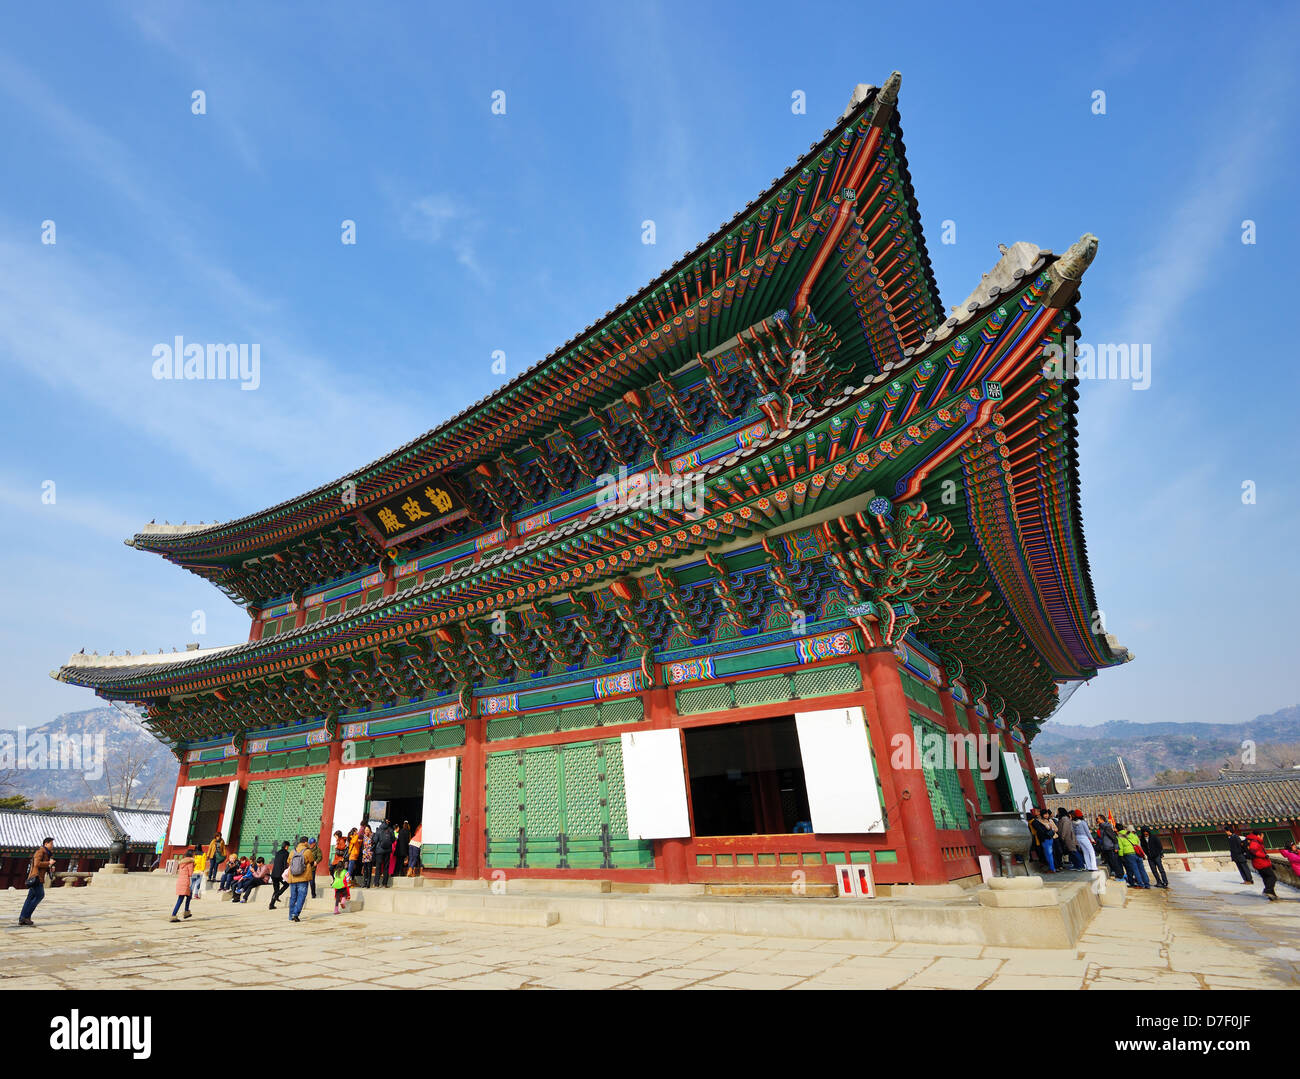 Gyeongbokgung Palace main throne hall in Seoul, South Korea. - Stock Image